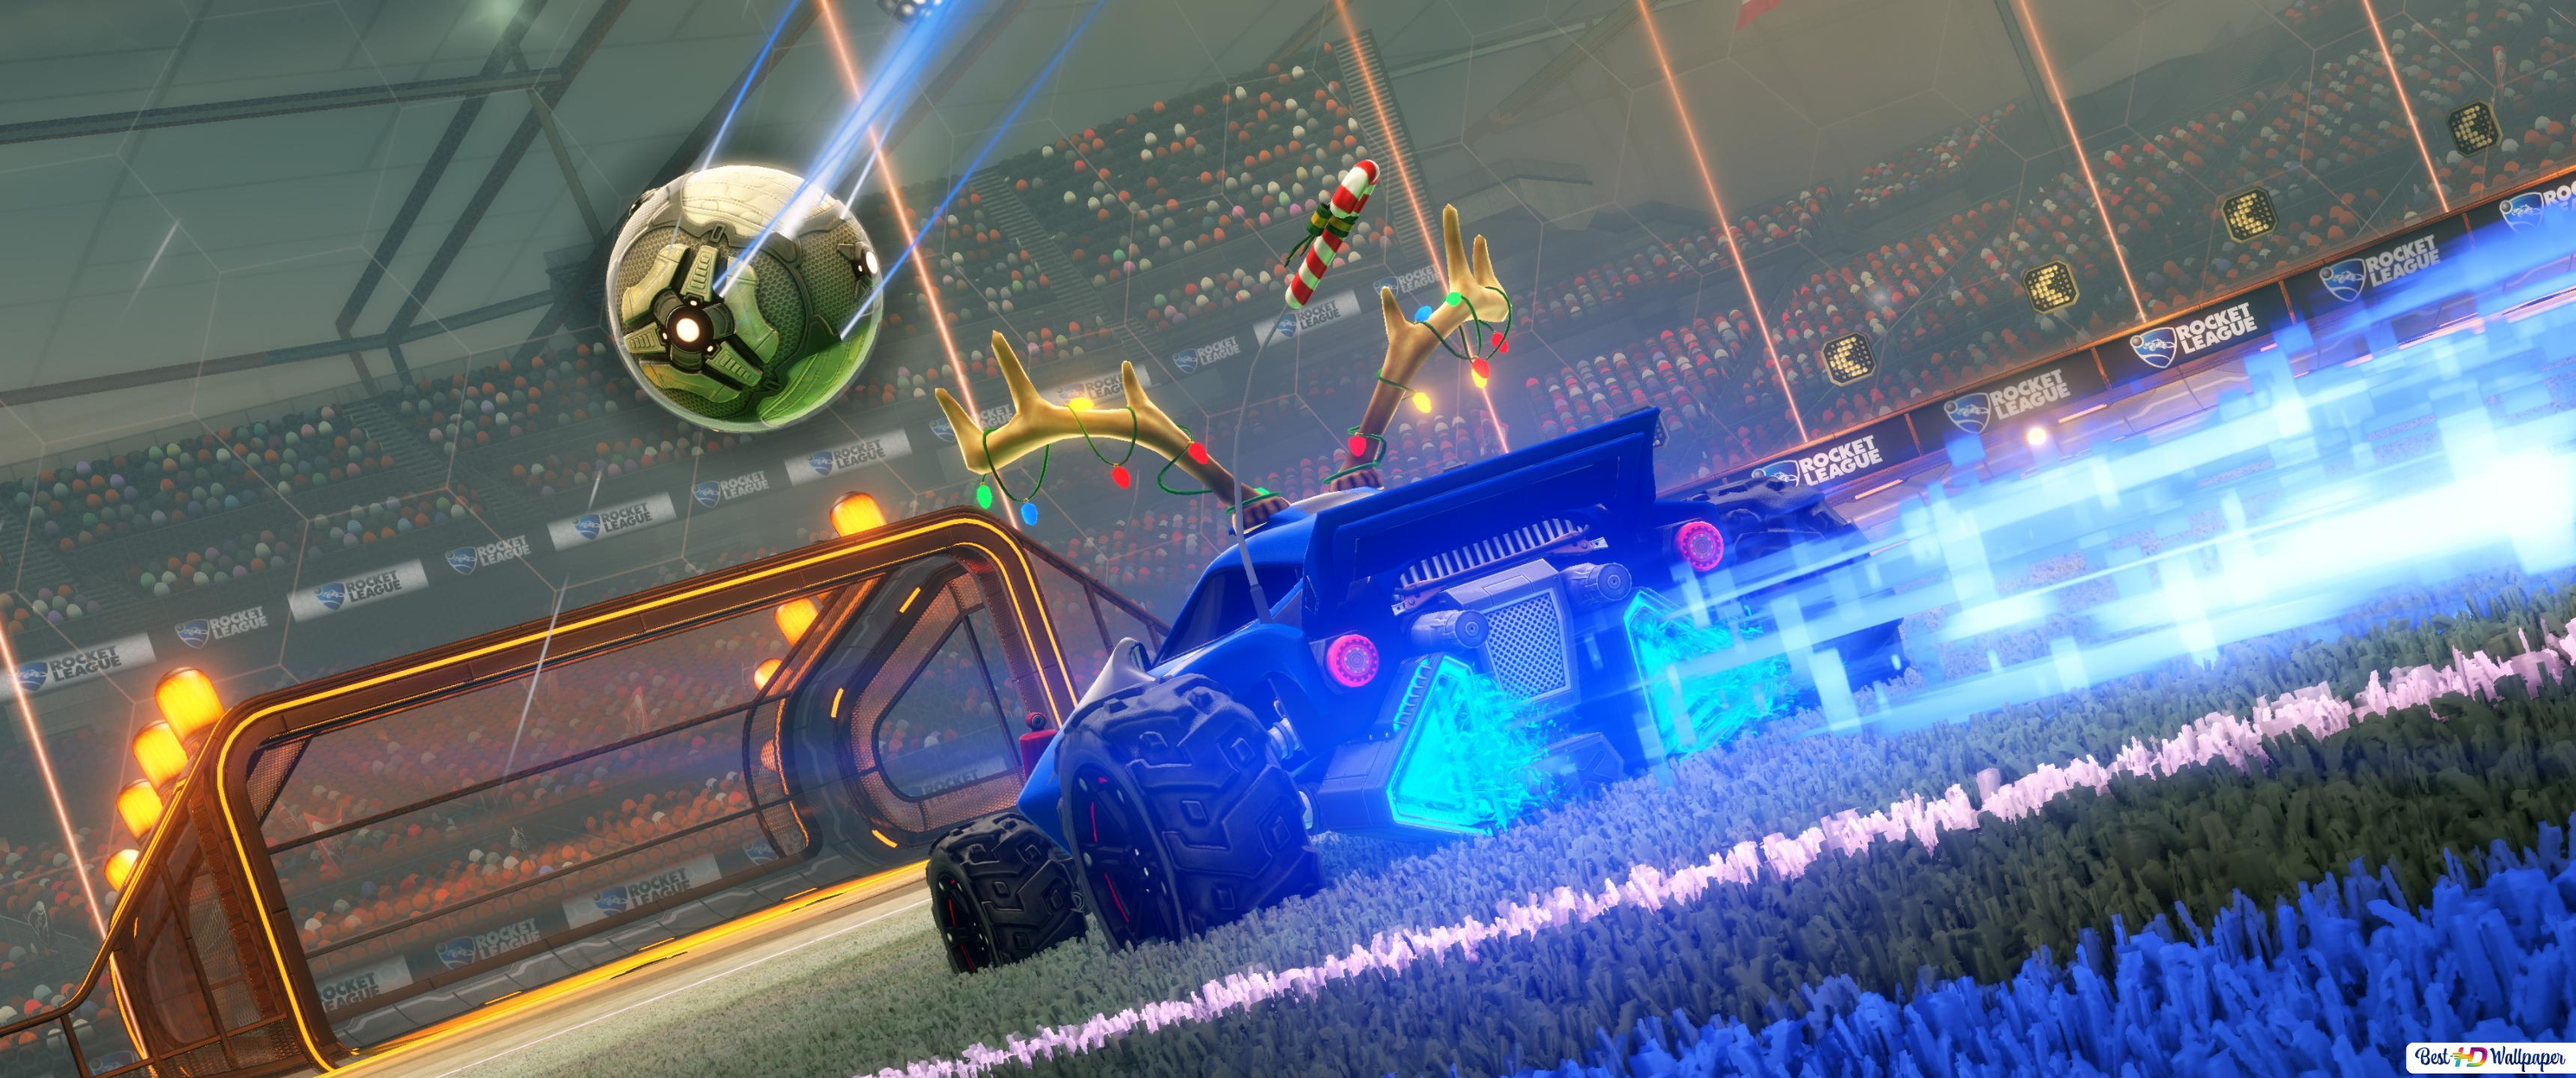 Rocket League Hd Wallpaper Download